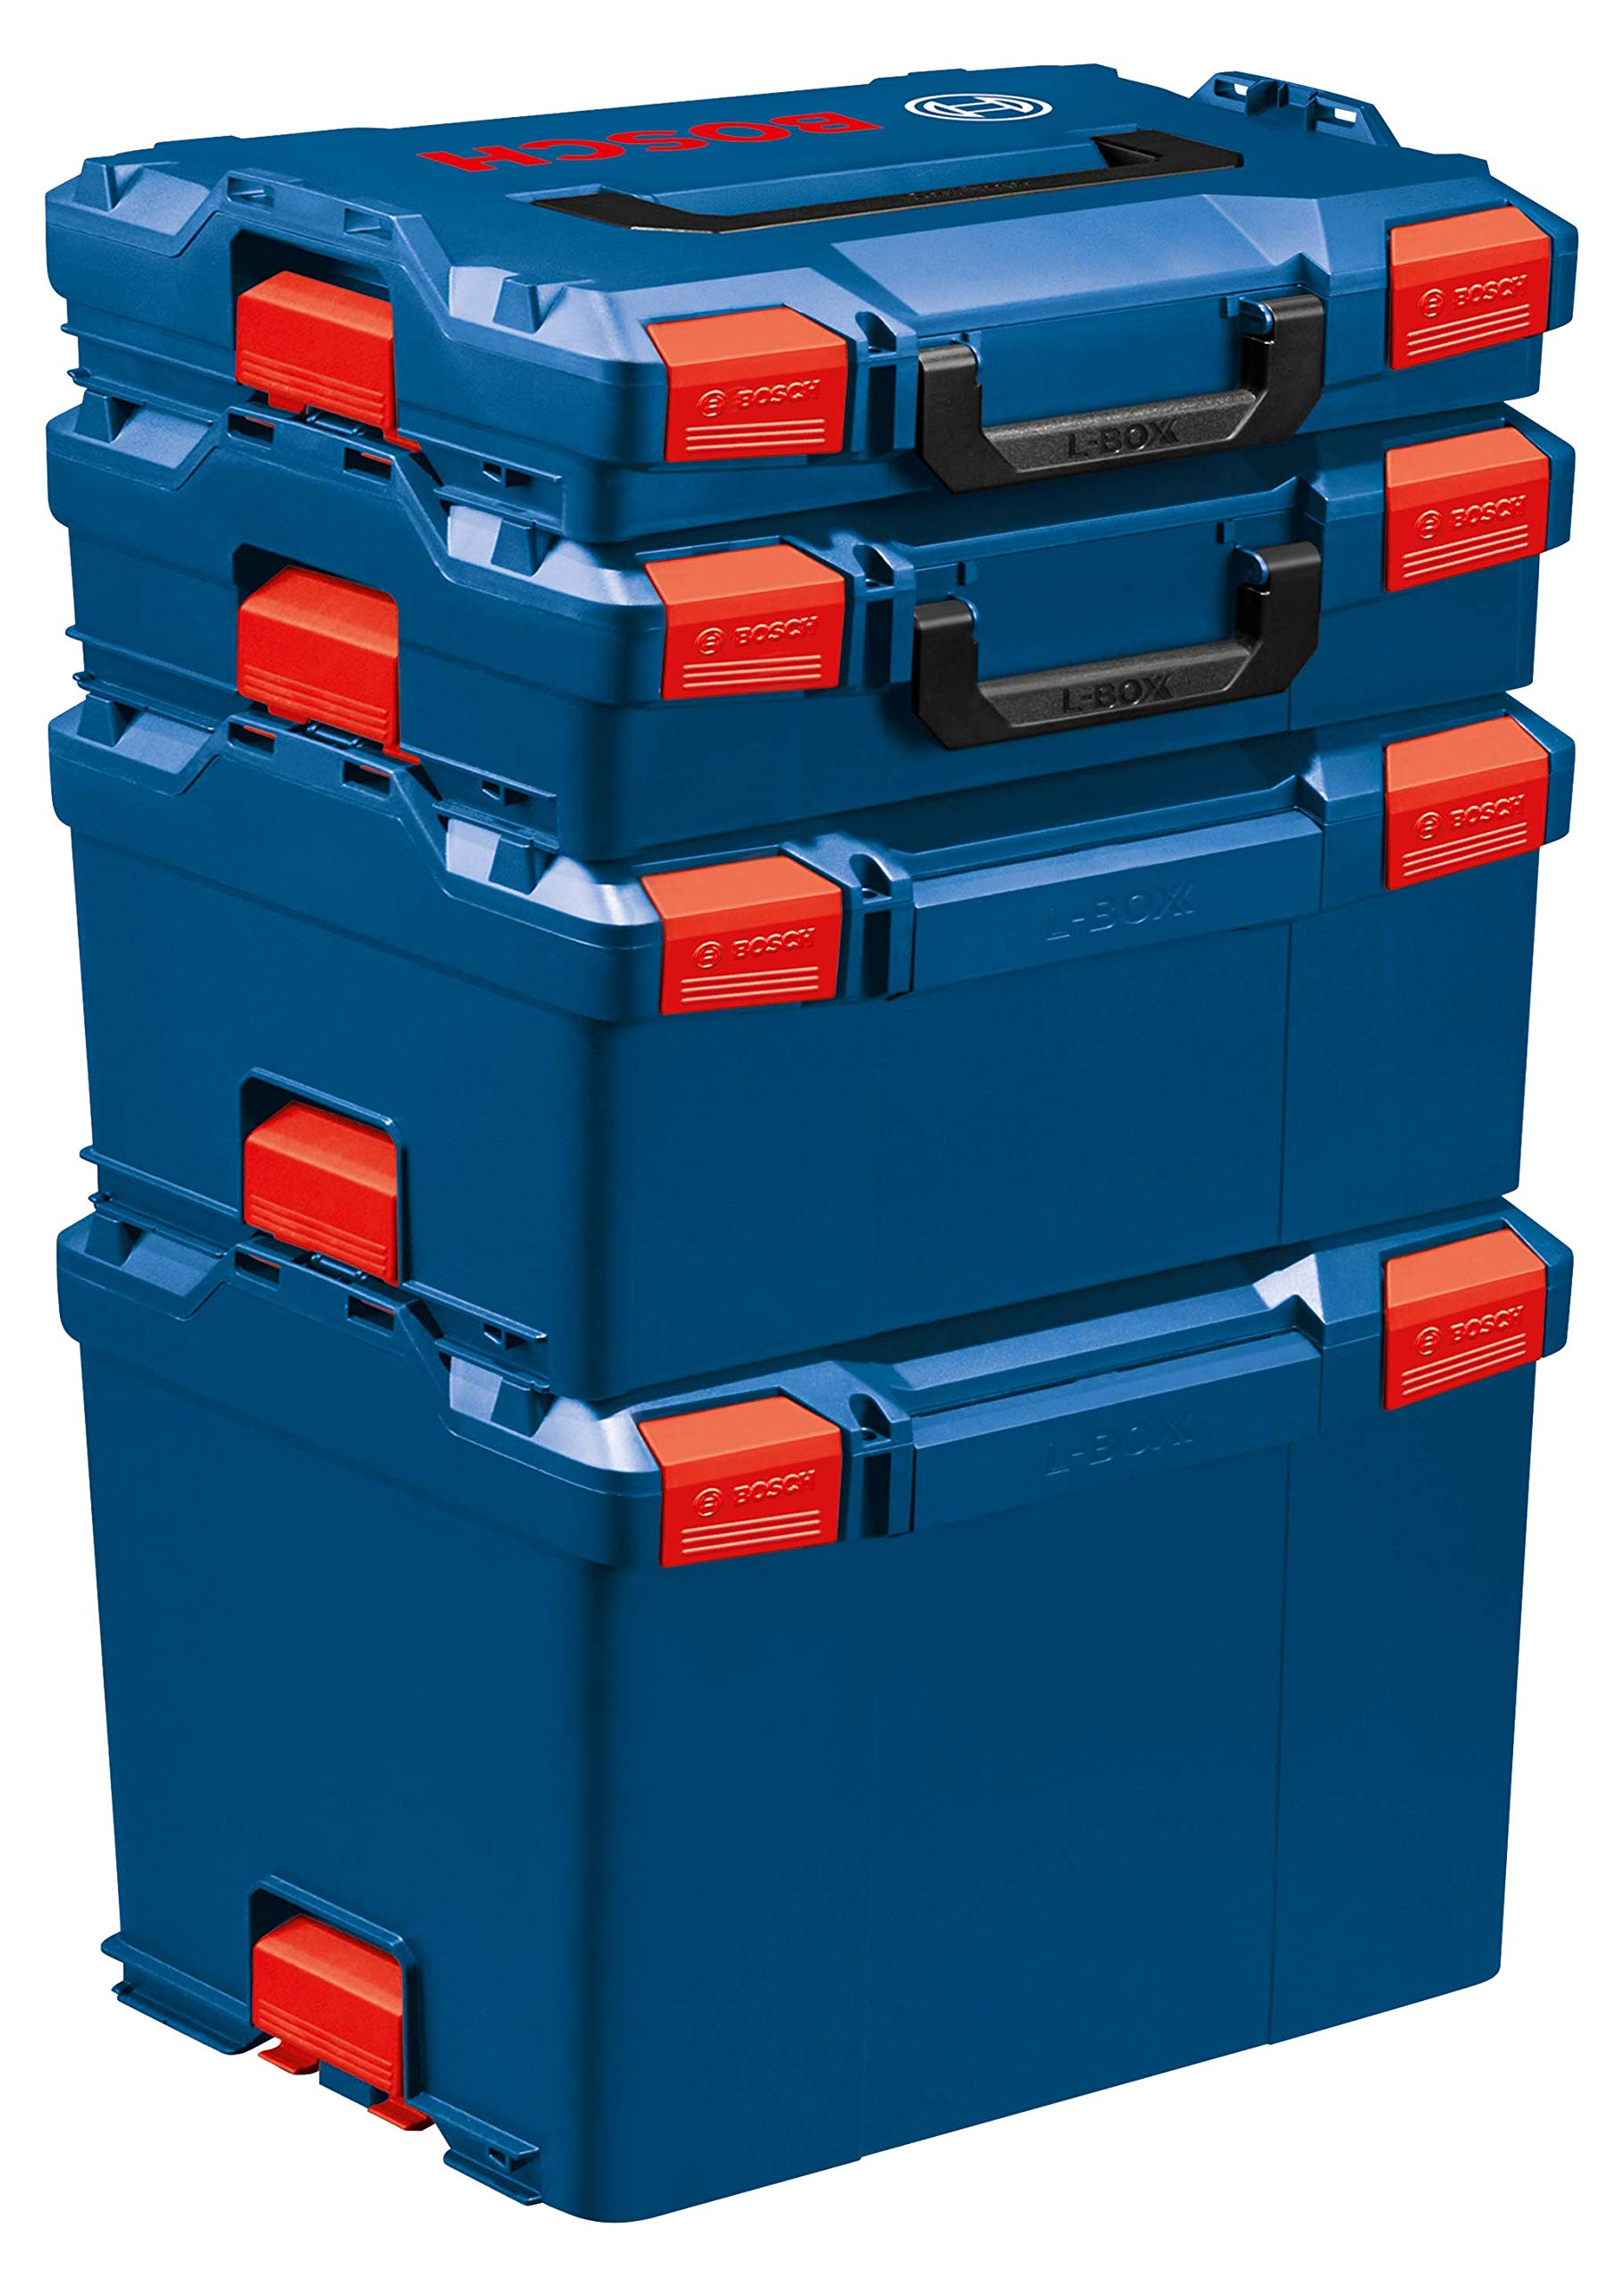 Bosch L-BOXX-1 4.5 In. x 14 In. x 17.5 In. Stackable Tool Storage Case by Bosch (Image #2)